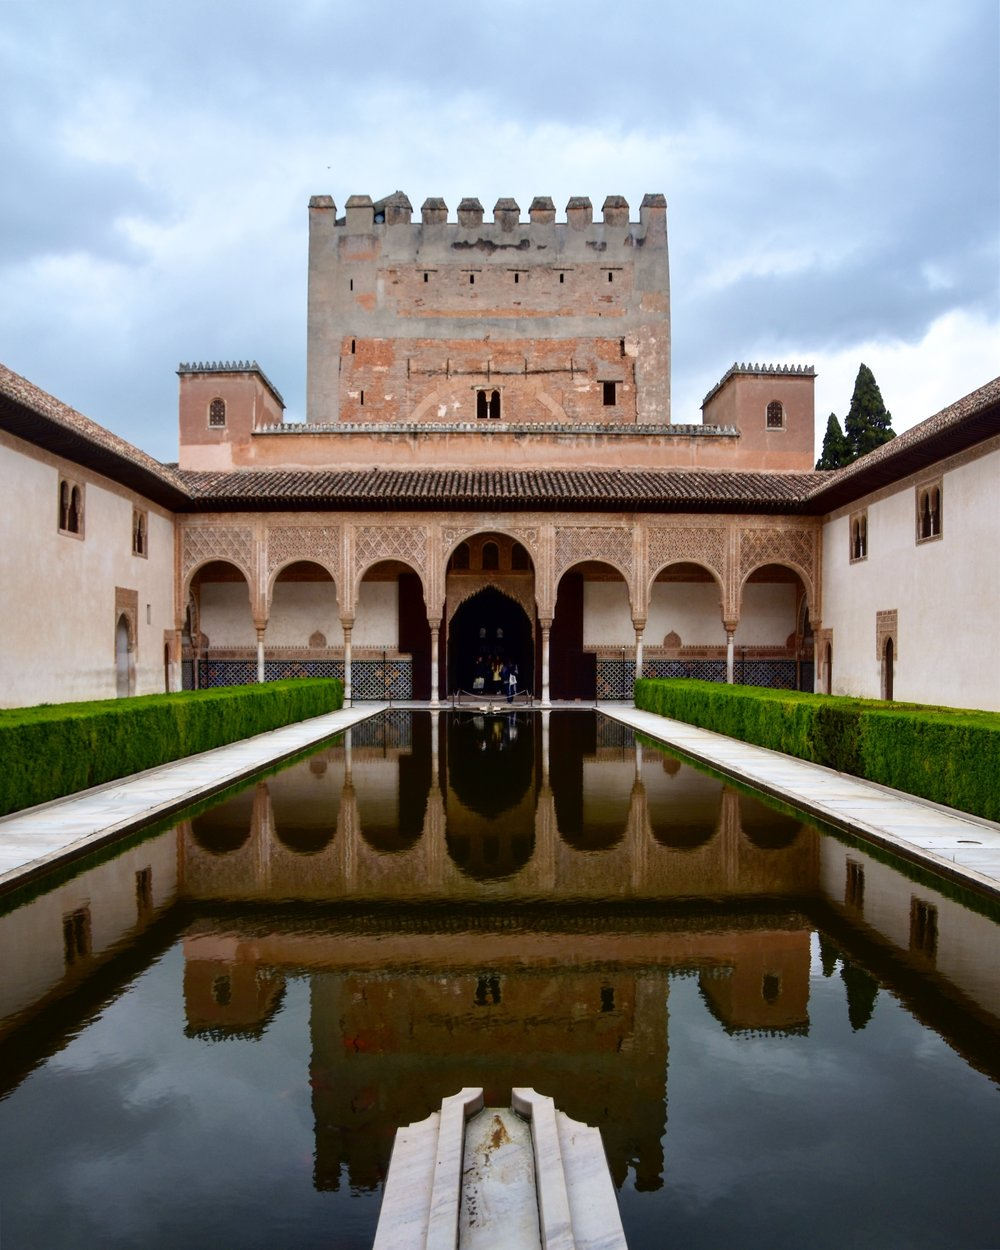 Reflecting pool at The Alhambra